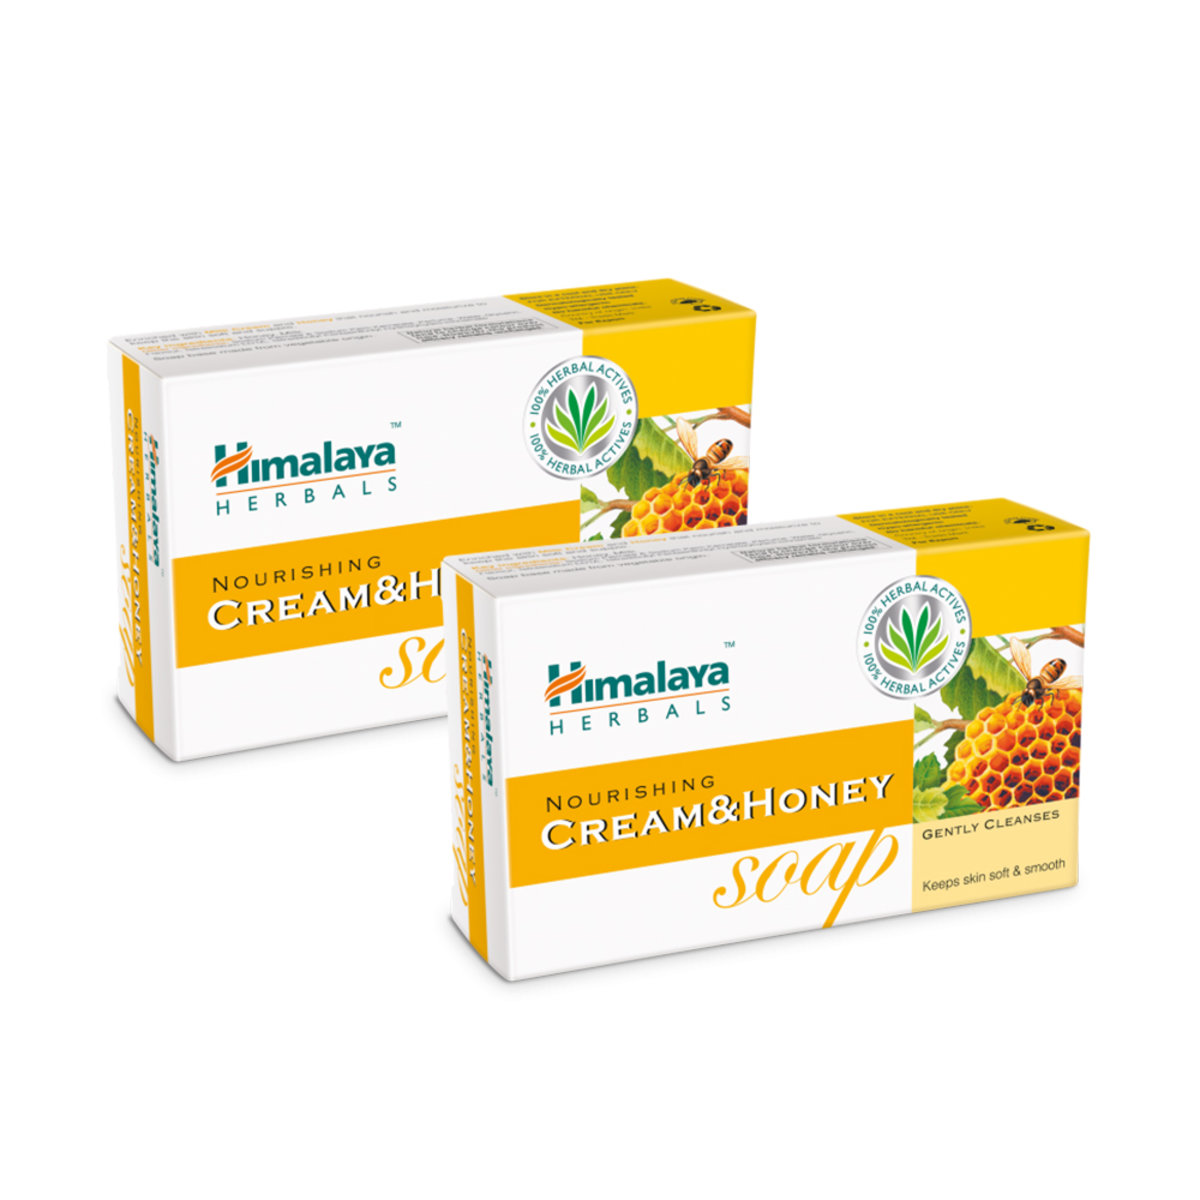 2 pcs Noruishing Cream&Honey Soap 75g  EXP:07-2021